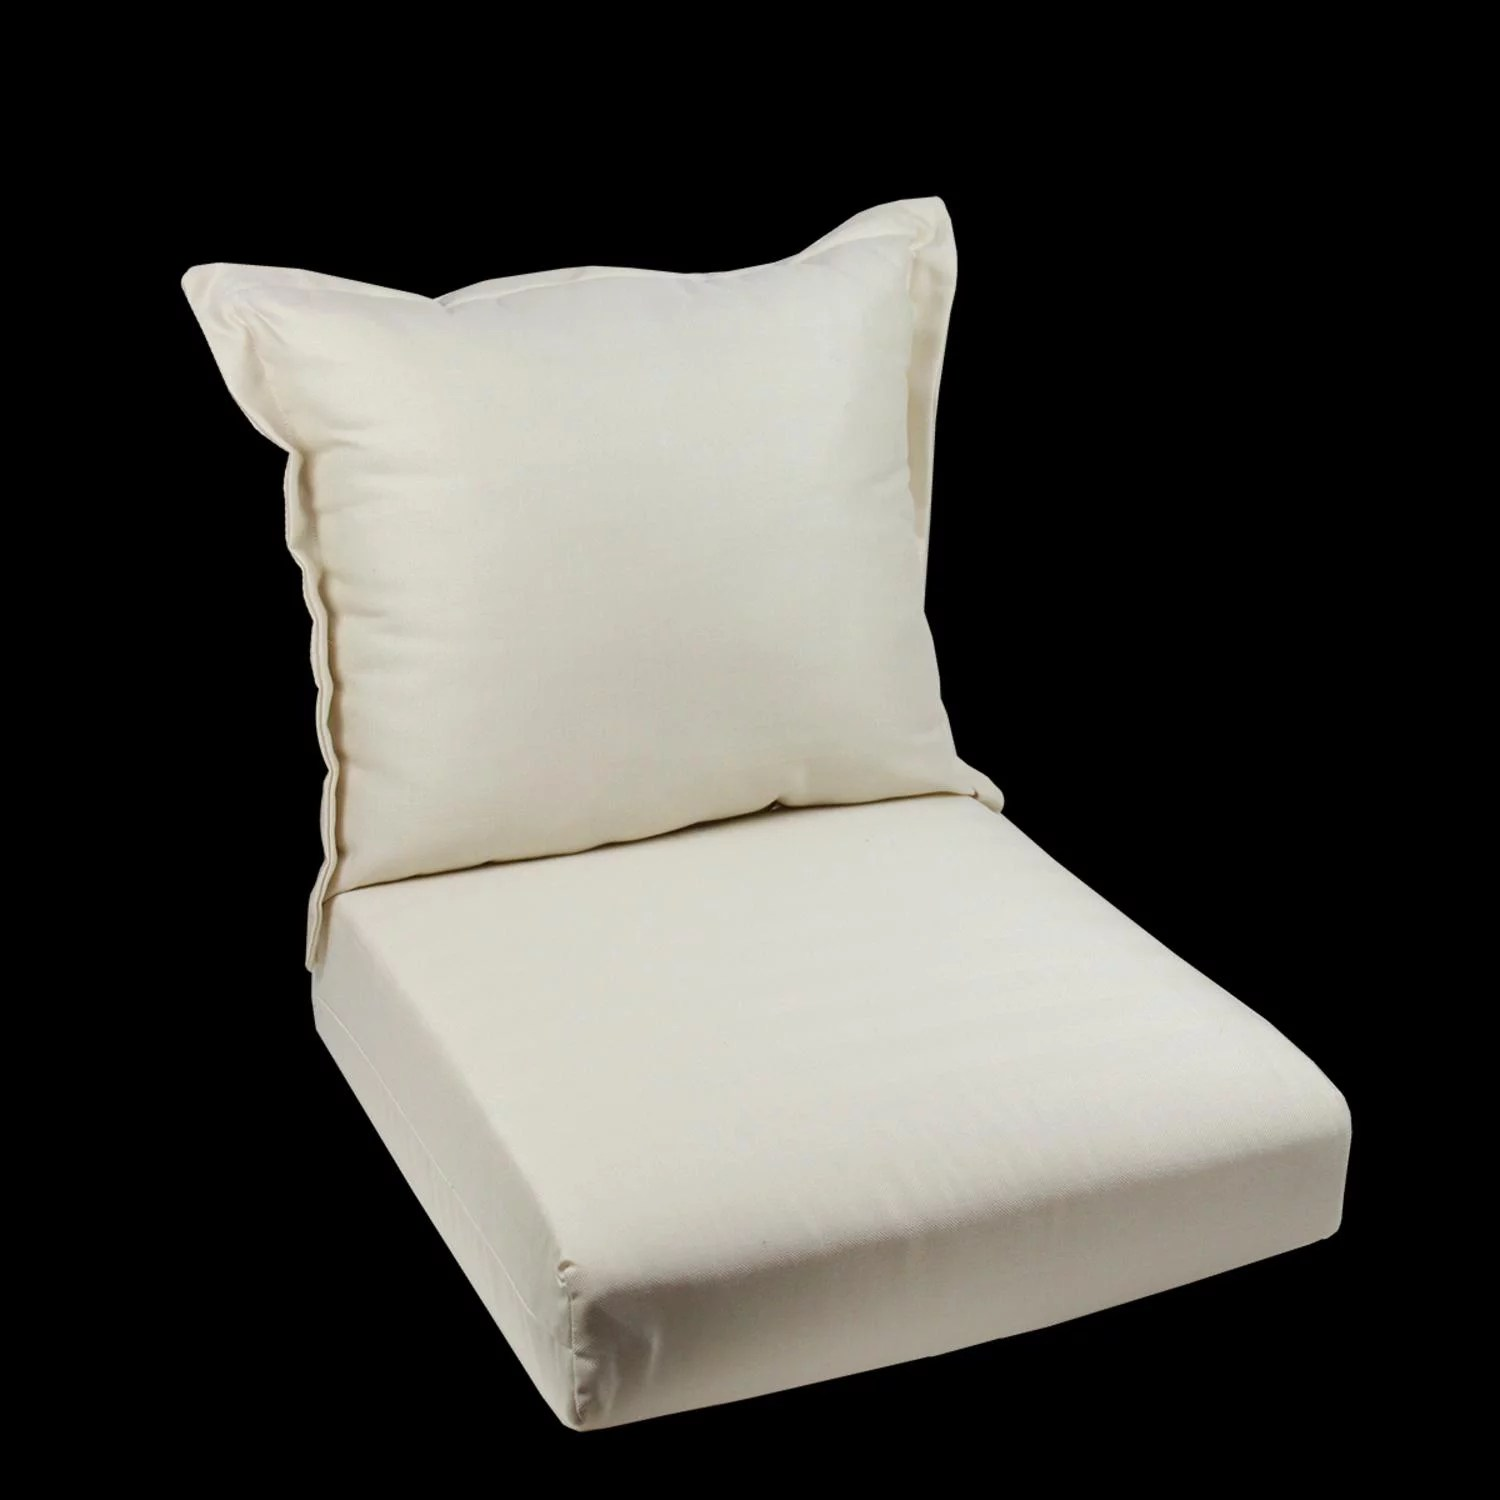 pillow perfect 22 x 24 sunbrella solid outdoor patio deep seating cushion and back pillow white